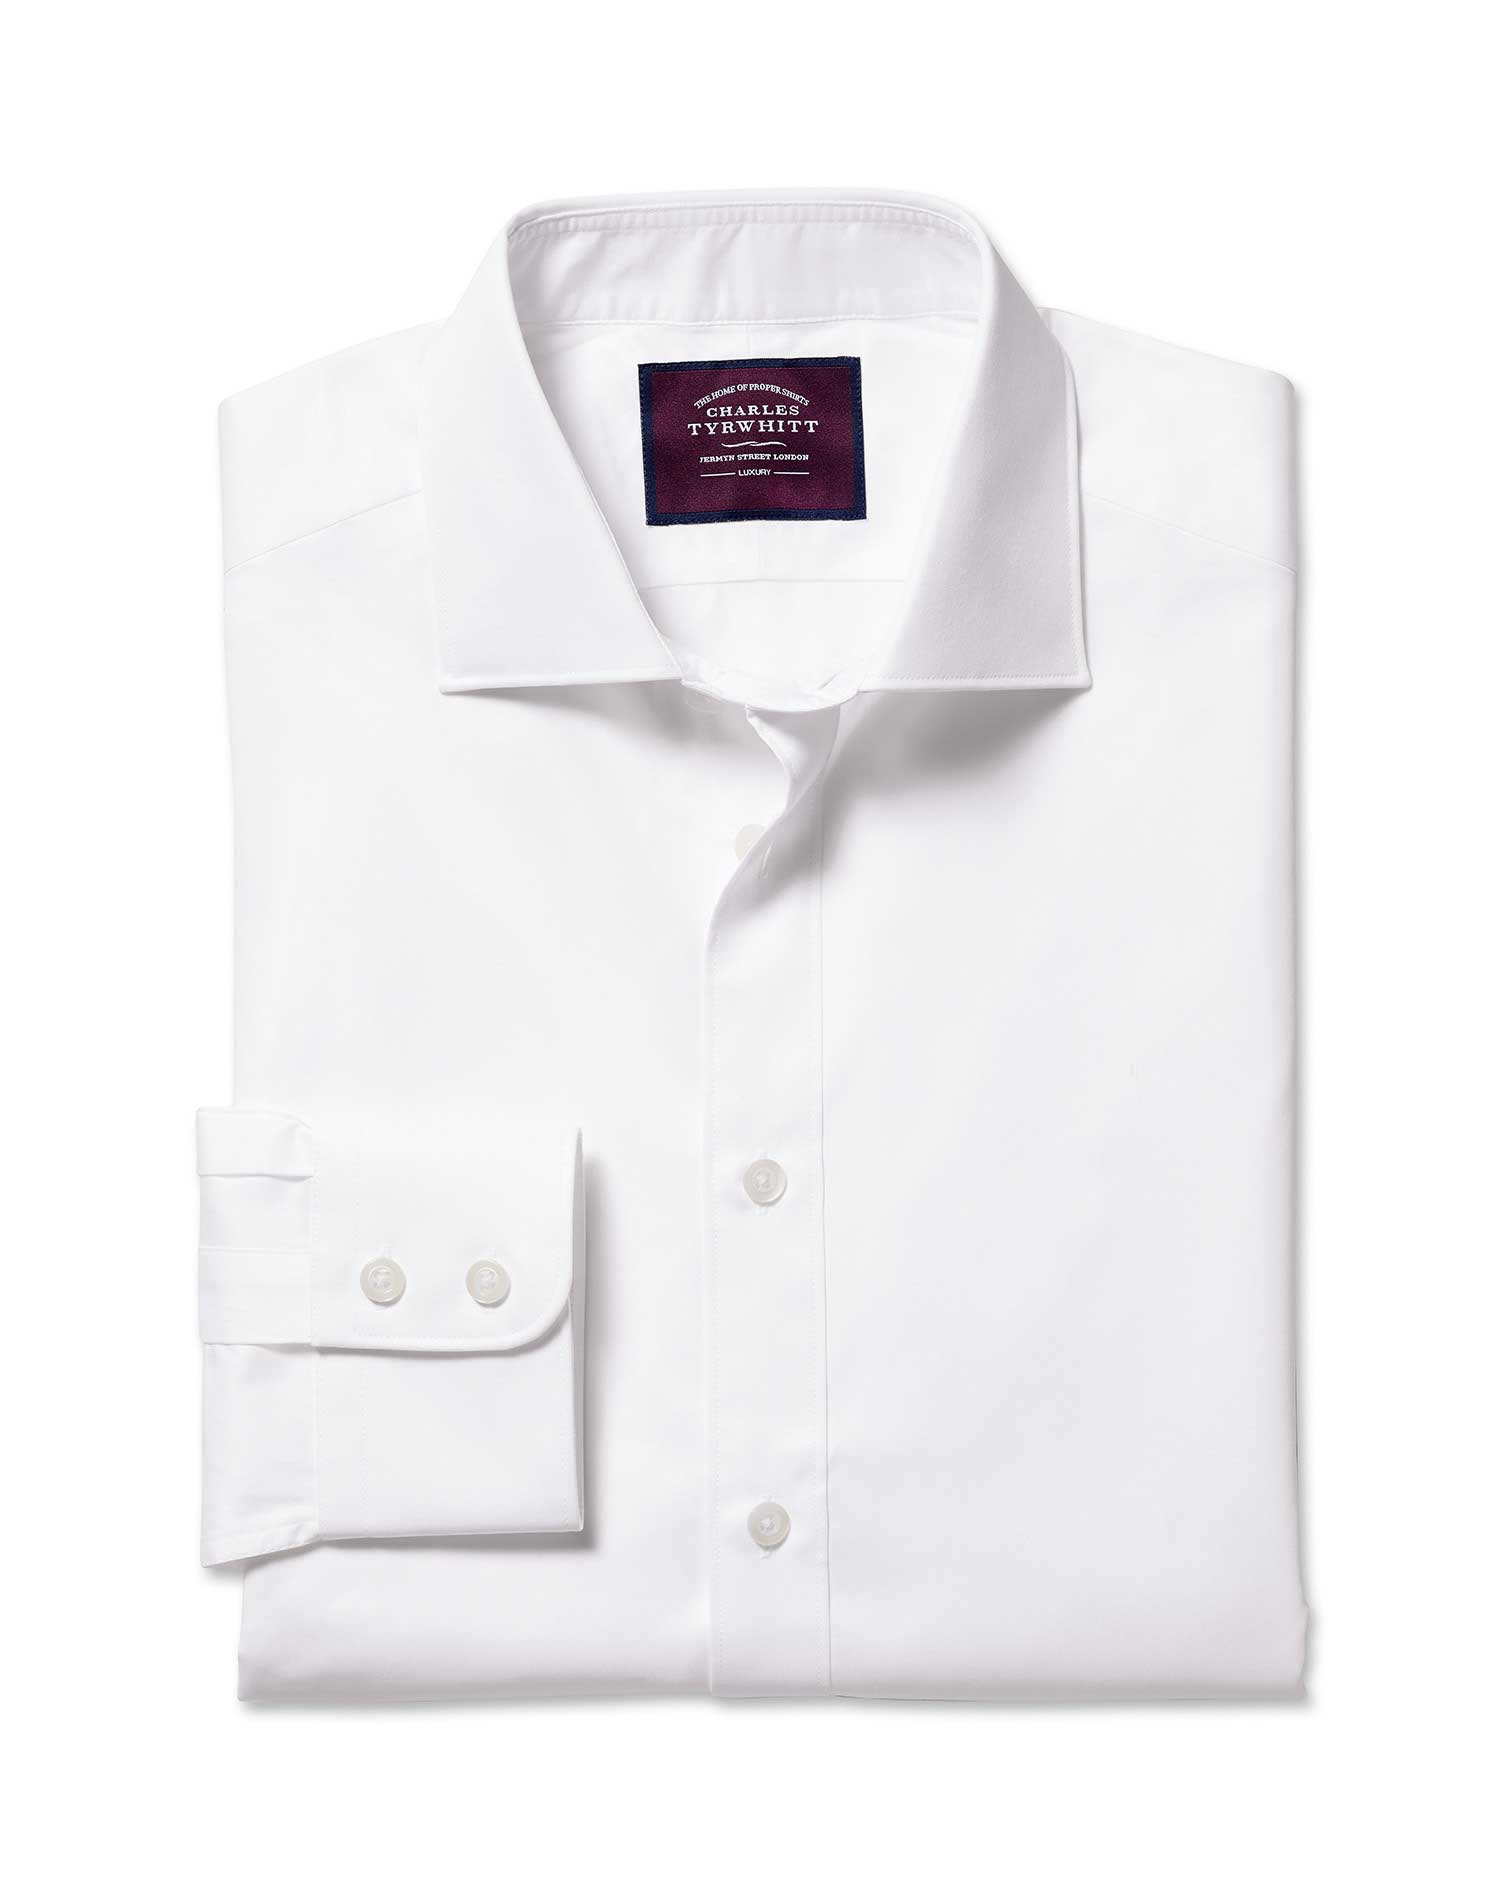 Extra Slim Fit White Luxury Twill Egyptian Cotton Formal Shirt Double Cuff Size 16.5/36 by Charles T